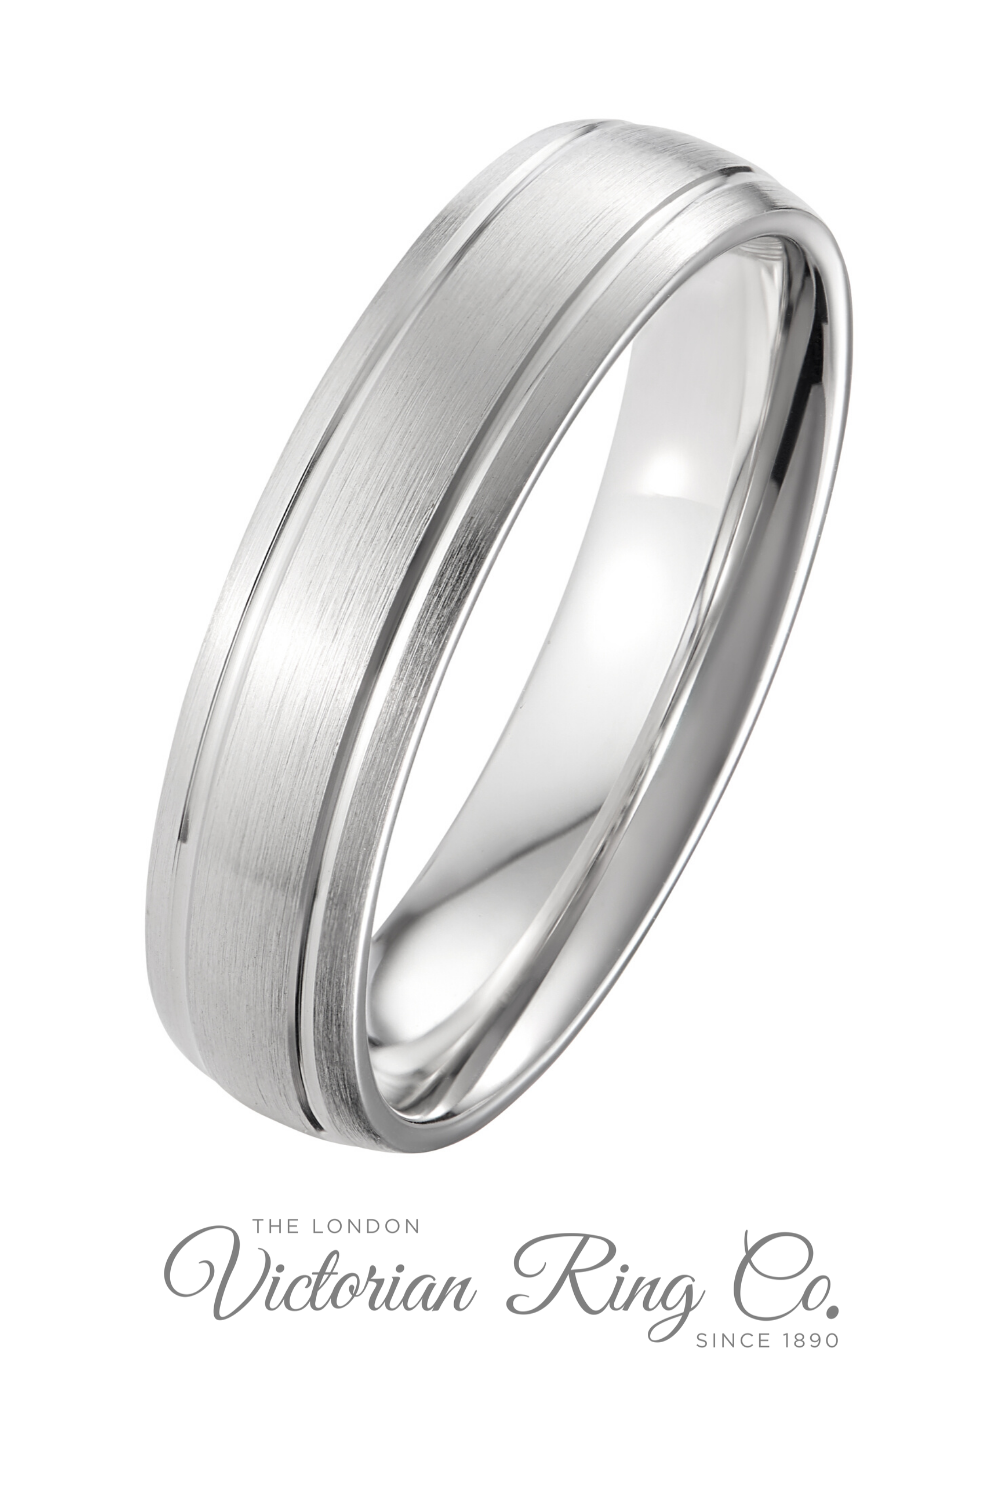 5mm Platinum Court Ring With Two Grooves Hatton Garden In 2020 Mens Wedding Rings Platinum Platinum Wedding Rings Unusual Wedding Rings